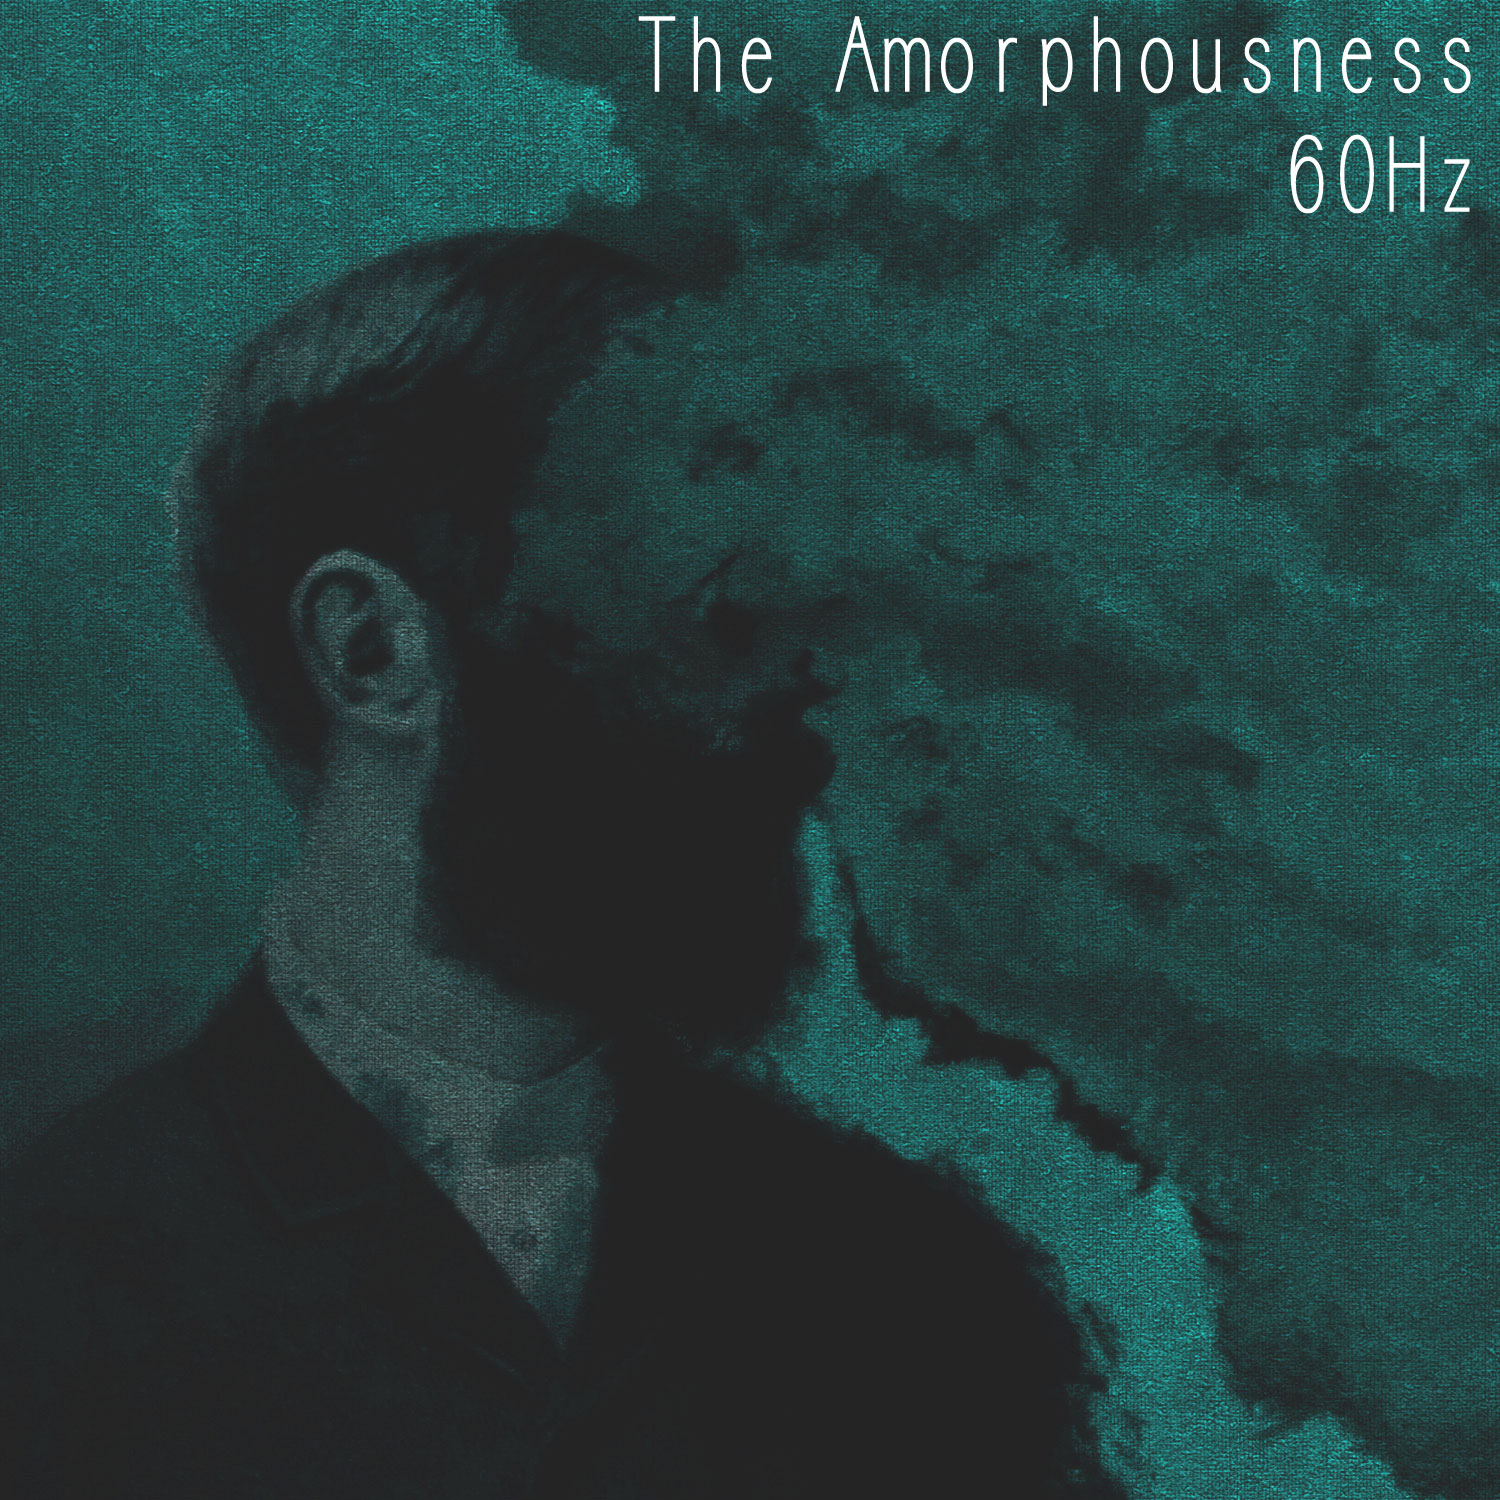 the amorphousness 60hz artwork